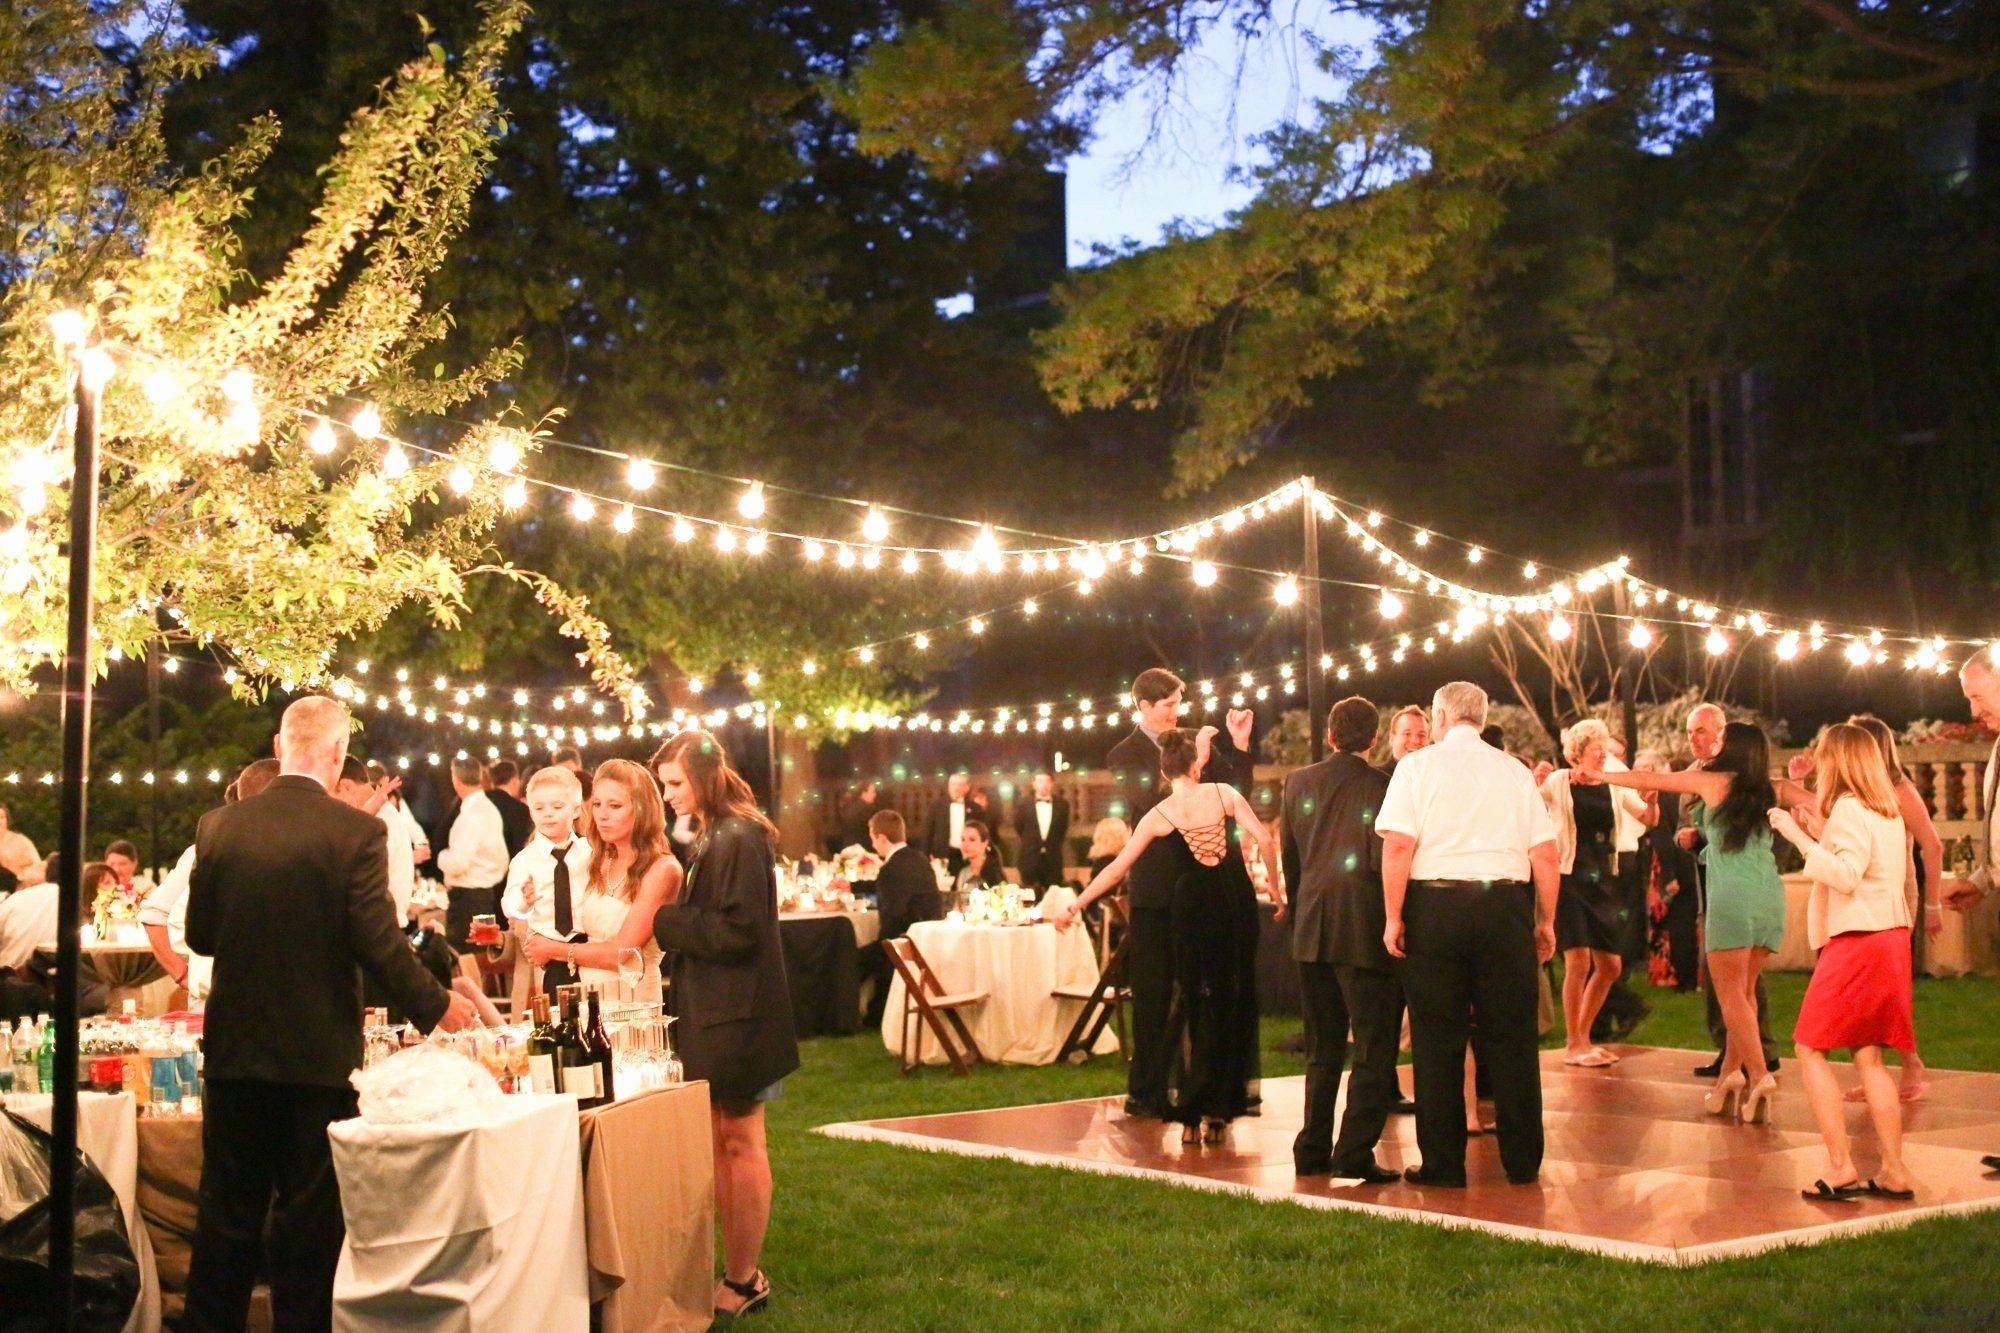 10 Attractive Ideas For A Small Wedding simple backyard wedding ideas lovely planning a small at 50th 2020